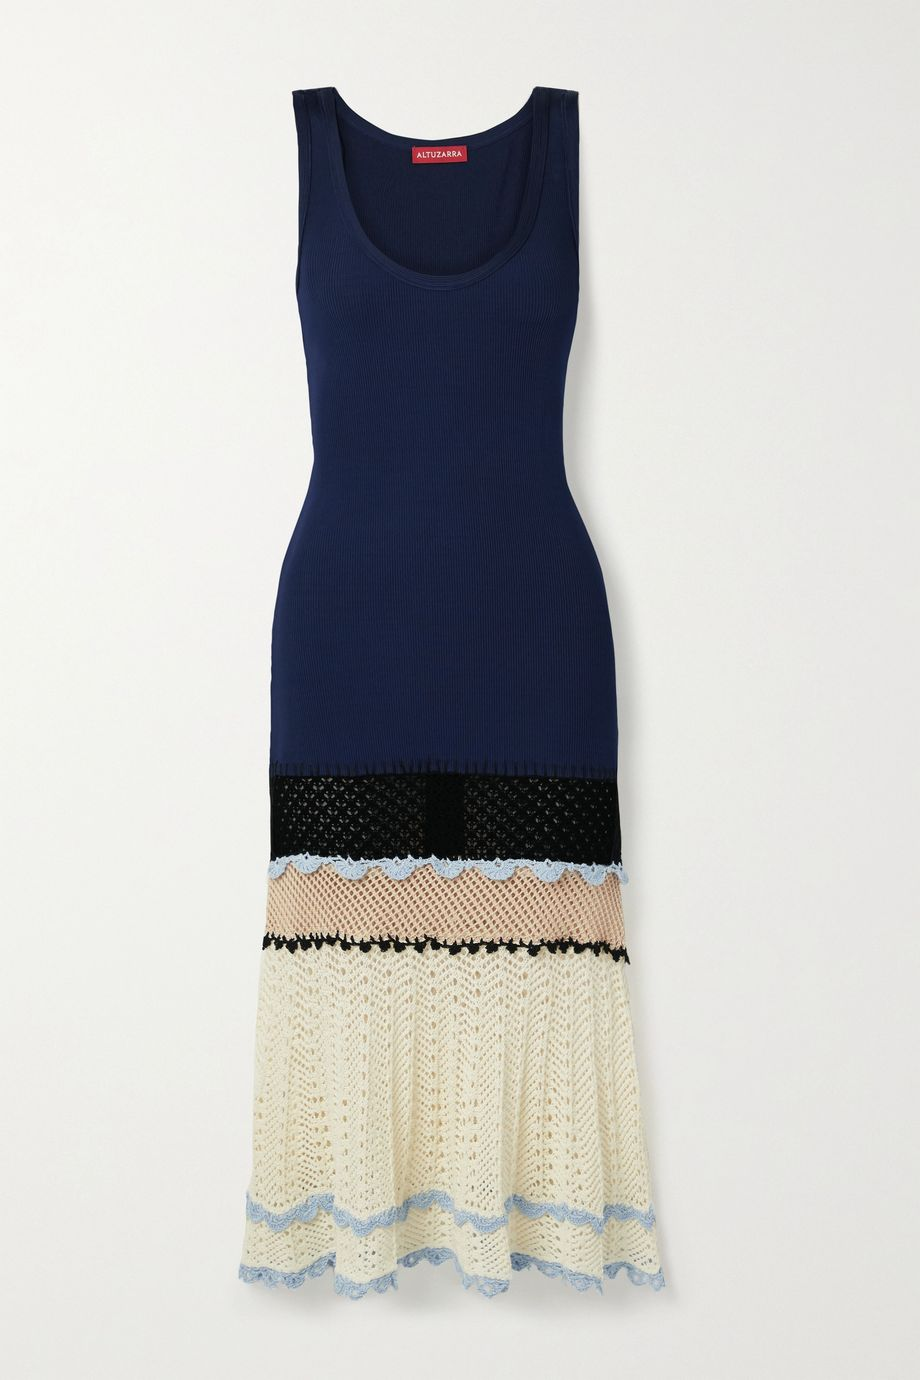 Altuzarra Cordgrass crochet-paneled ribbed jersey midi dress